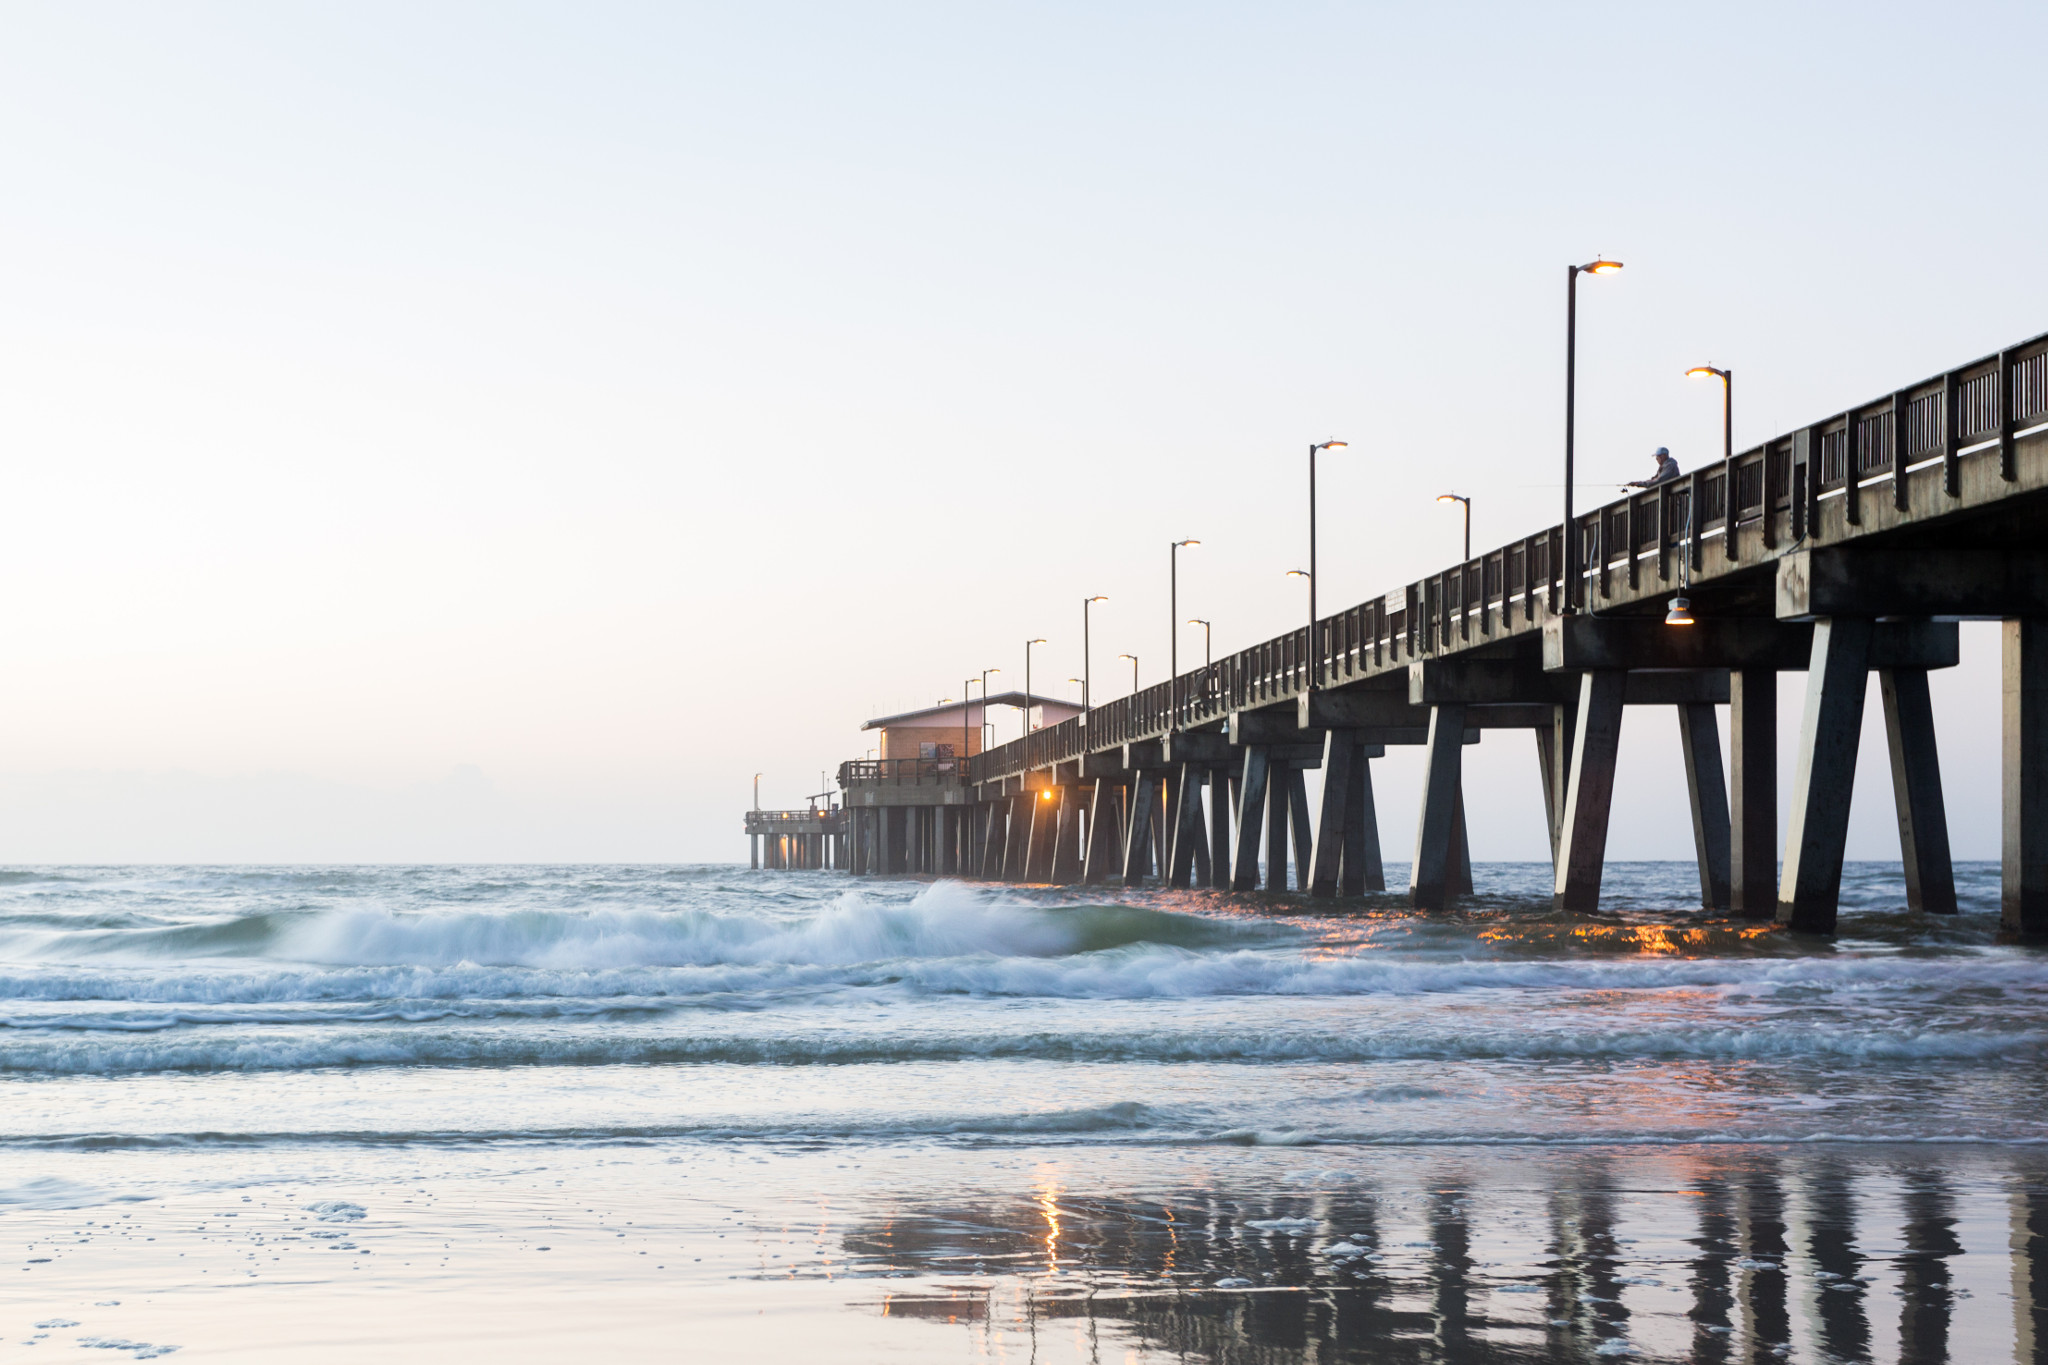 The Gulf State Park Pier offers fishing opportunities and a great view